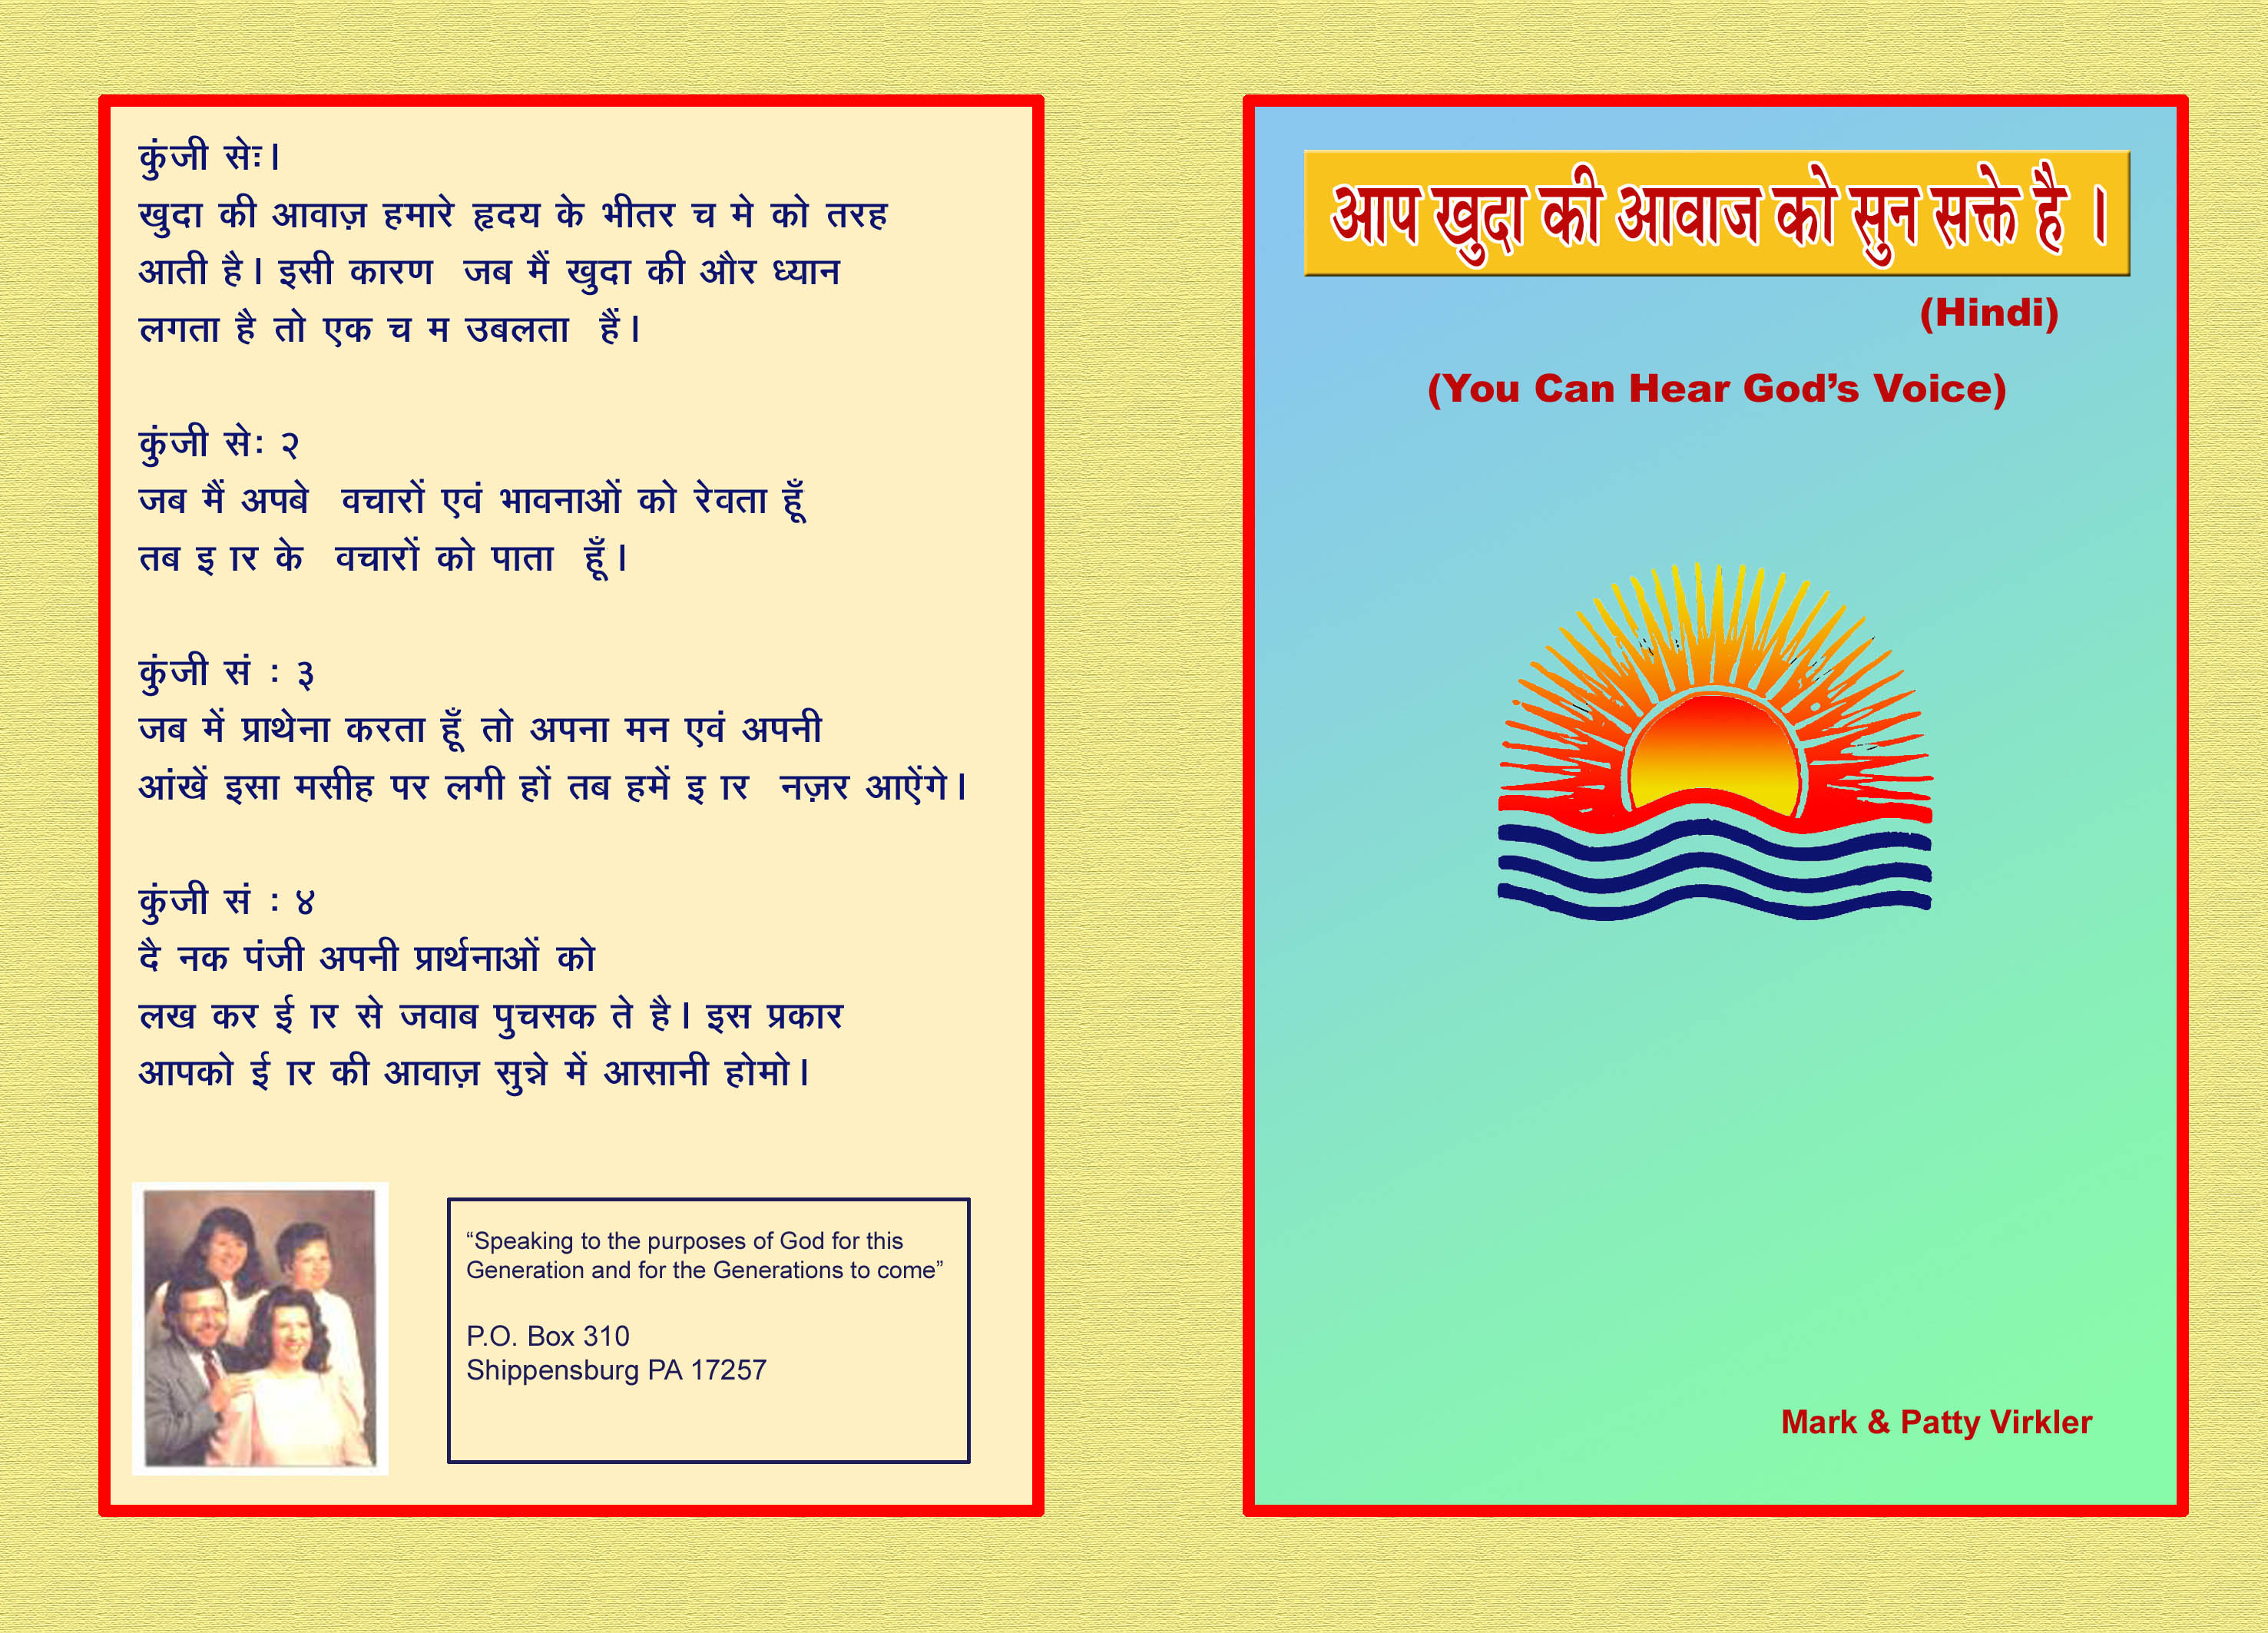 free christian books video and mp3 audio in hindi